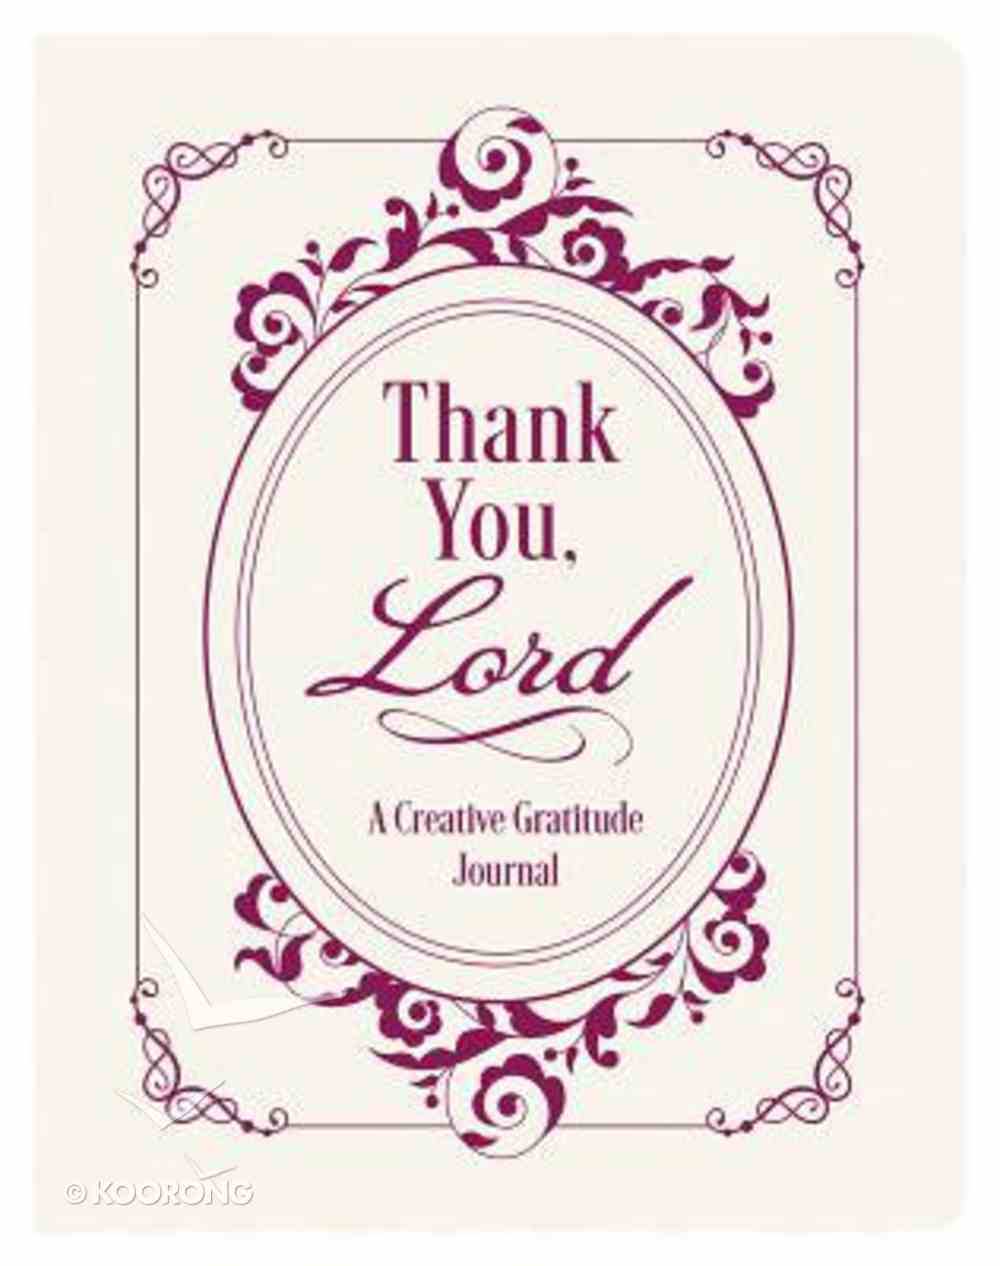 Thank You, Lord: A Creative Gratitude Journal Paperback